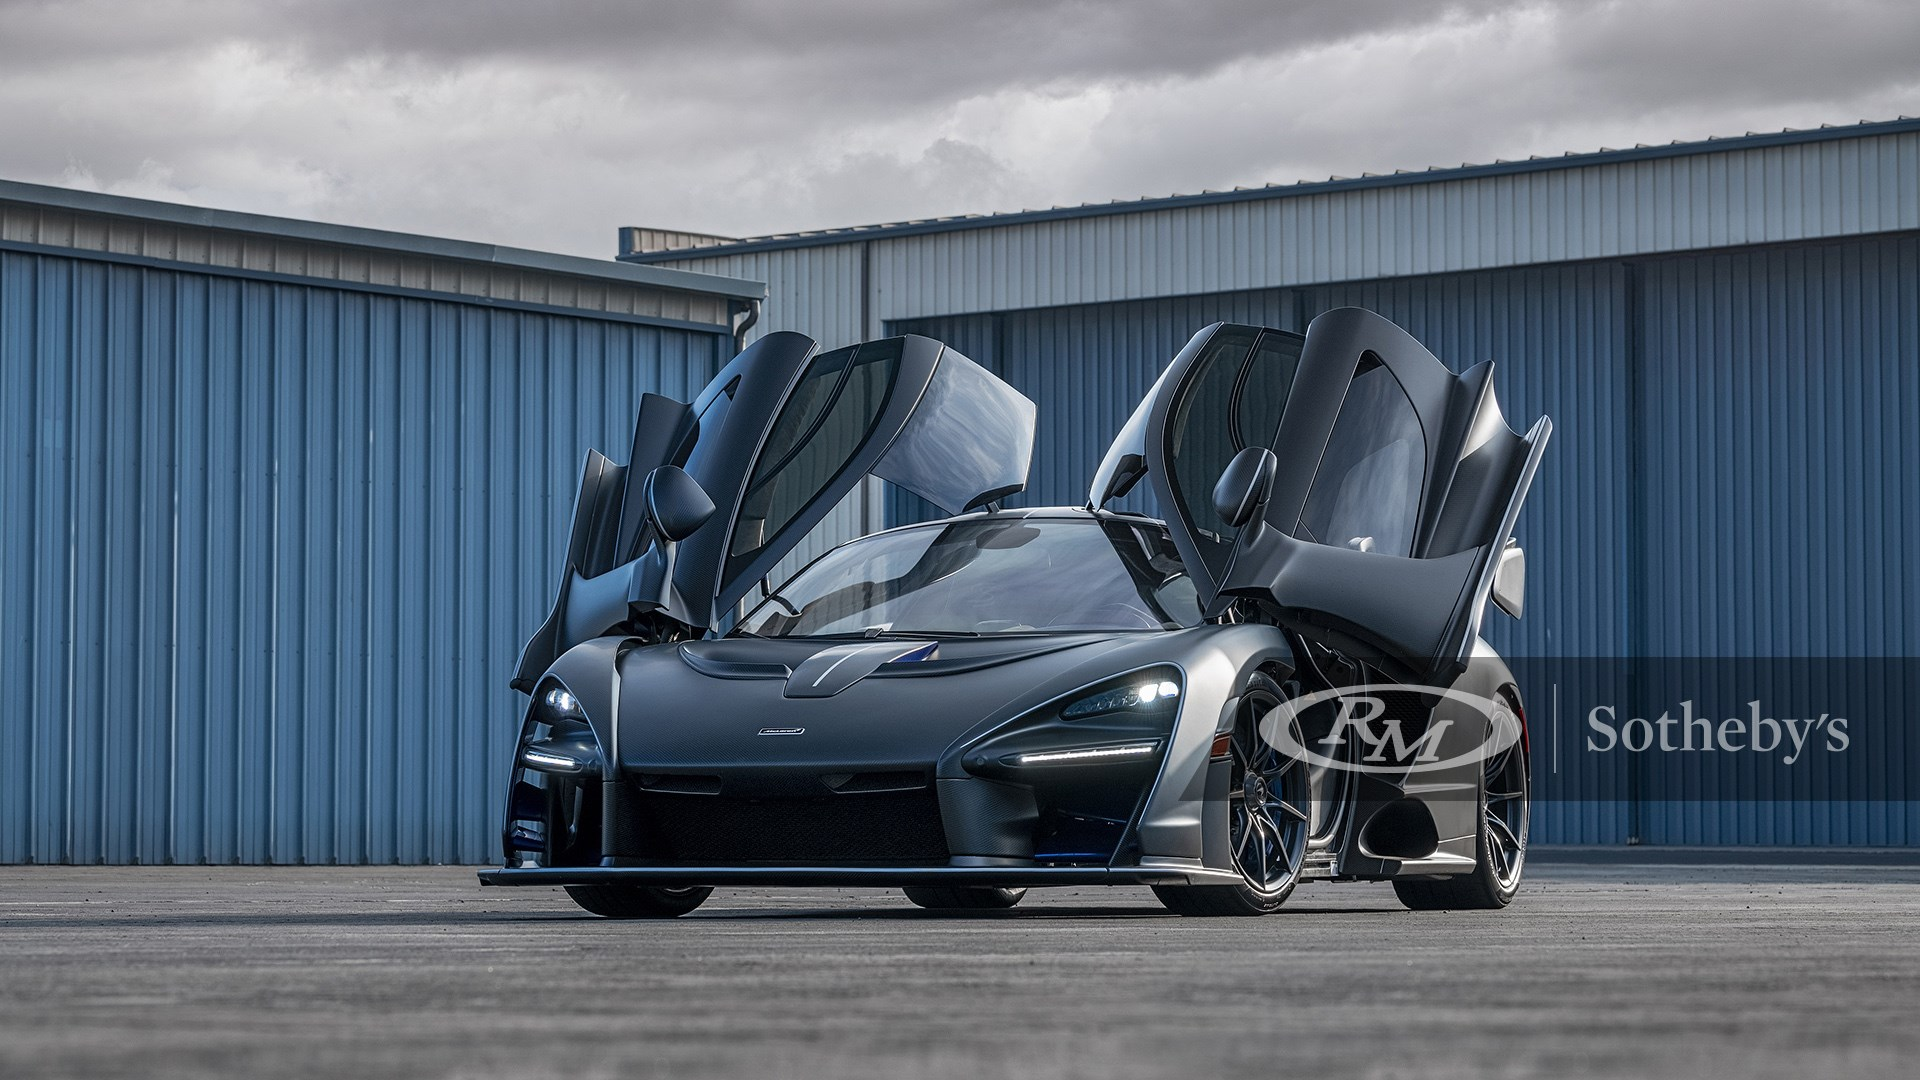 2019 McLaren Senna available at RM Sotheby's Arizona Live Auction 2021